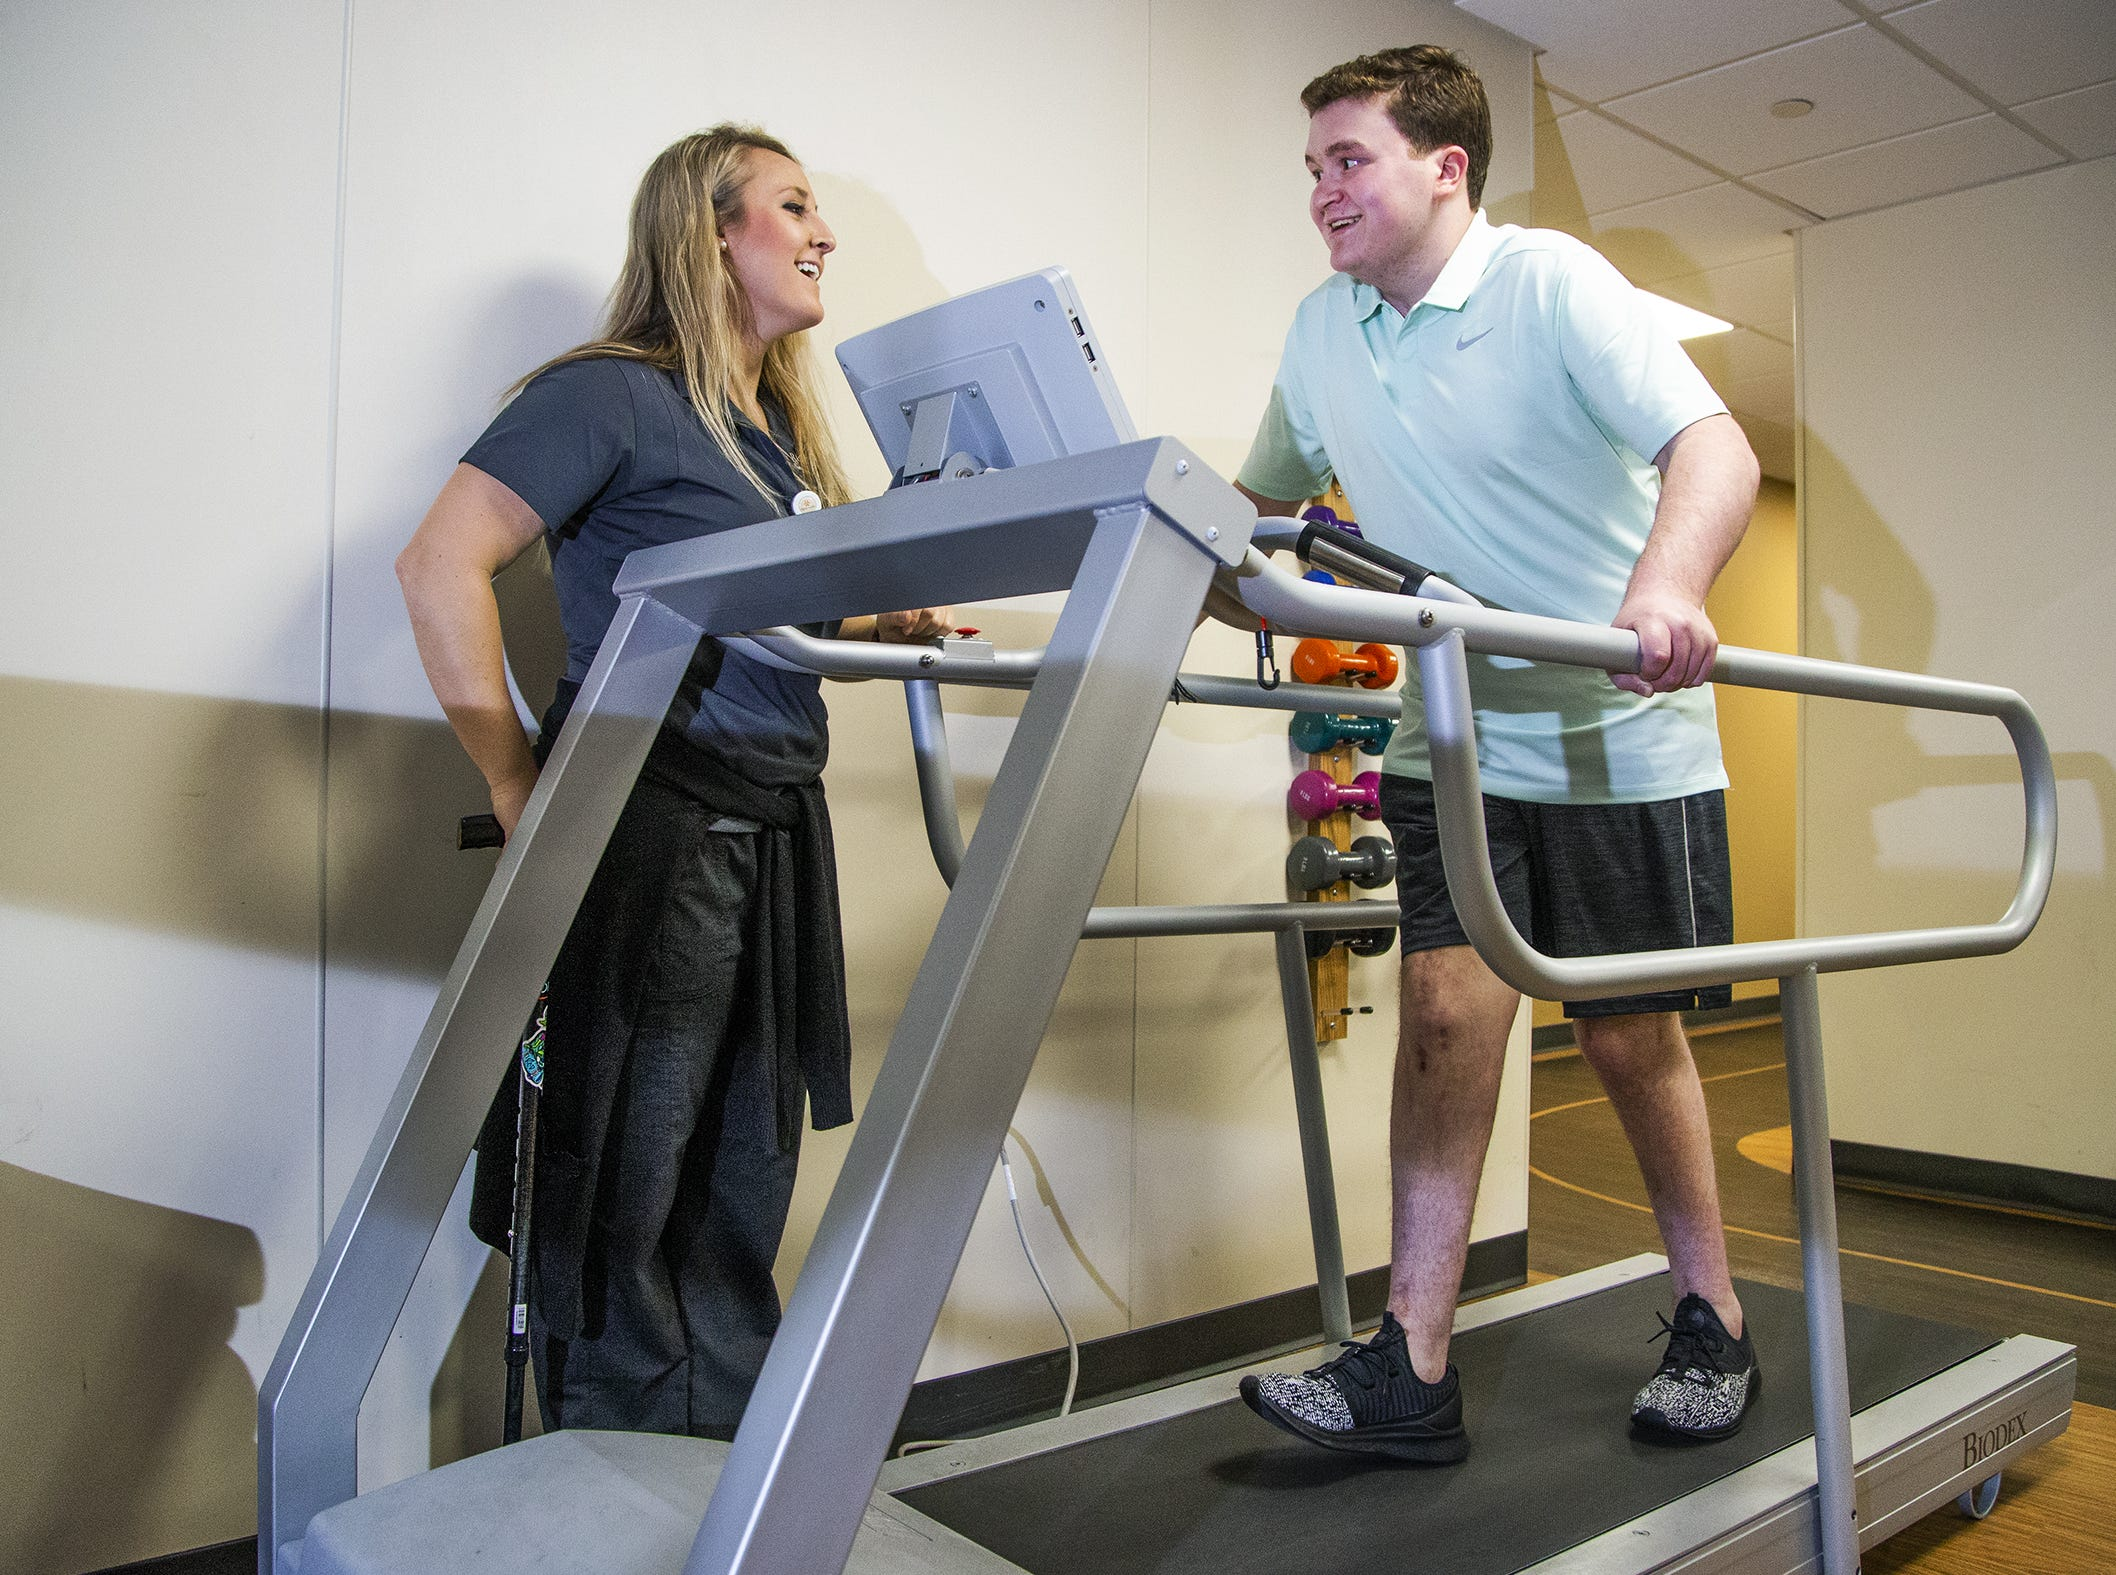 Brody Burnell, 20, right, survived a horrific airplane crash in 2017 and has made a miraculous recovery from multiple injuries, including traumatic brain injury.  He works the treadmill with his physical therapist, Laura Baumert, D.P.T., at the Neuro-Rehabilitation Center at Barrow Neurological Institute, Tuesday, March 19, 2019.